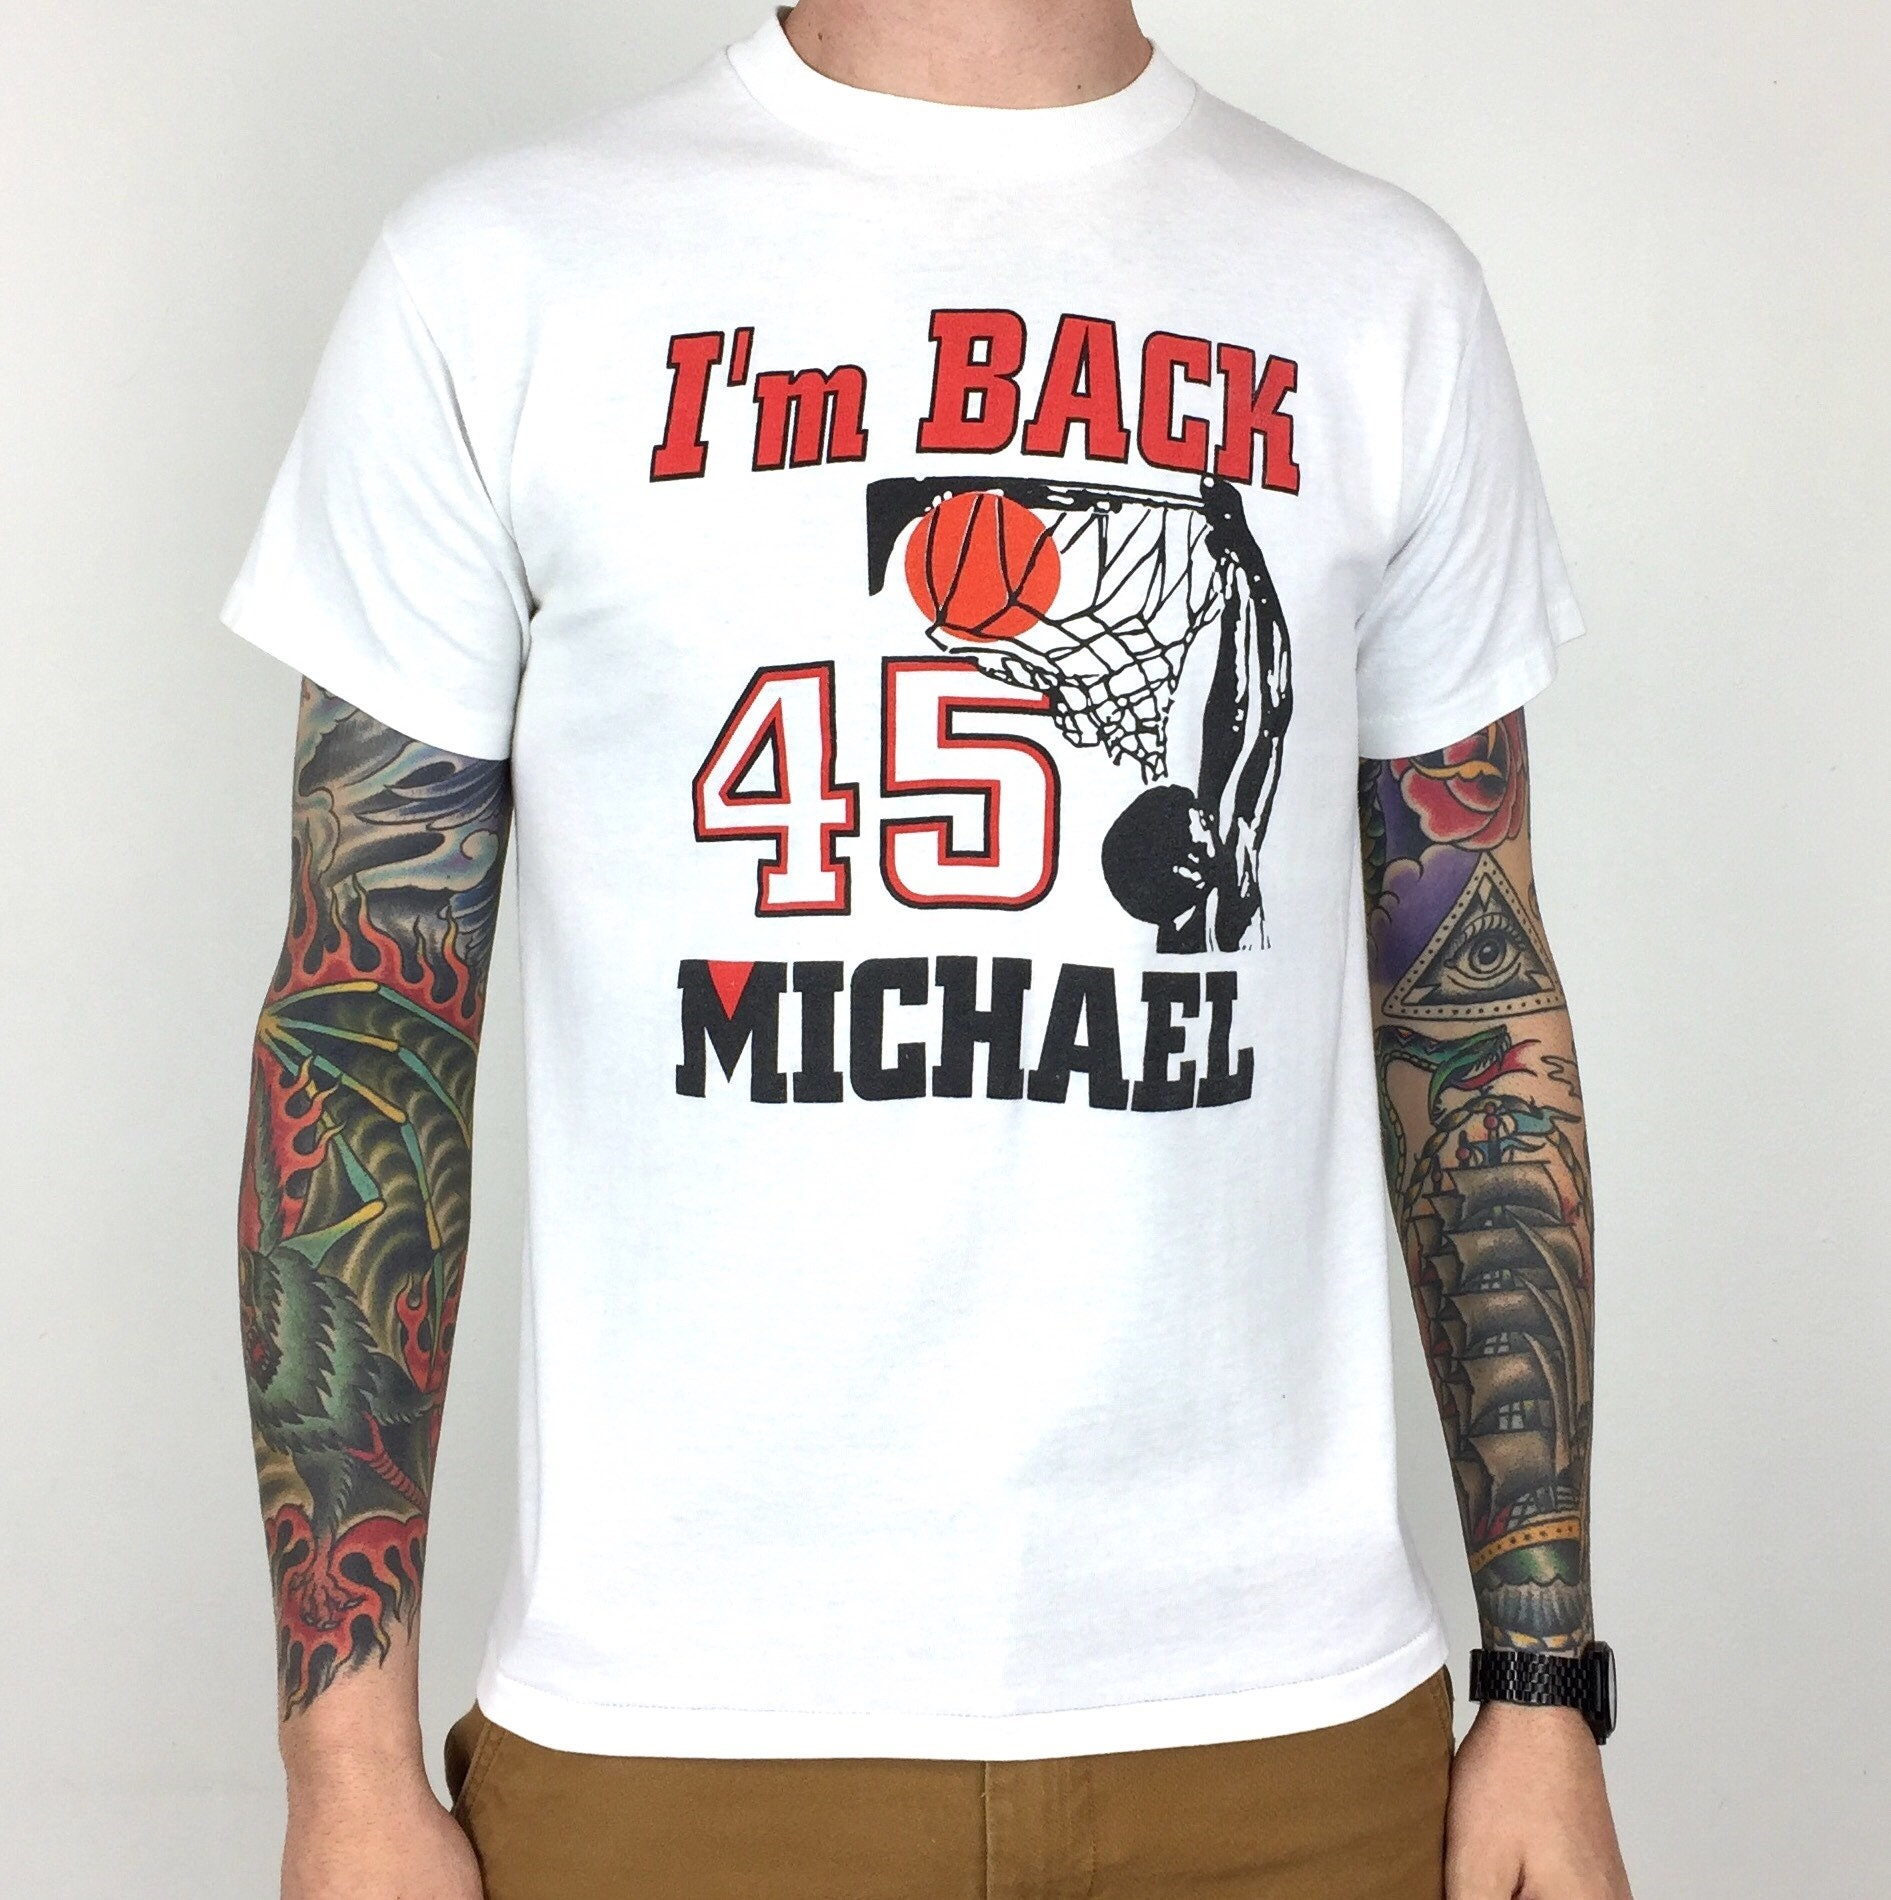 1c5ebfb1b436 Vintage 90s NBA Chicago Bulls Michael Jordan  45 I m Back white single  stitch basketball graphic tee t-shirt shirt - Size S-M